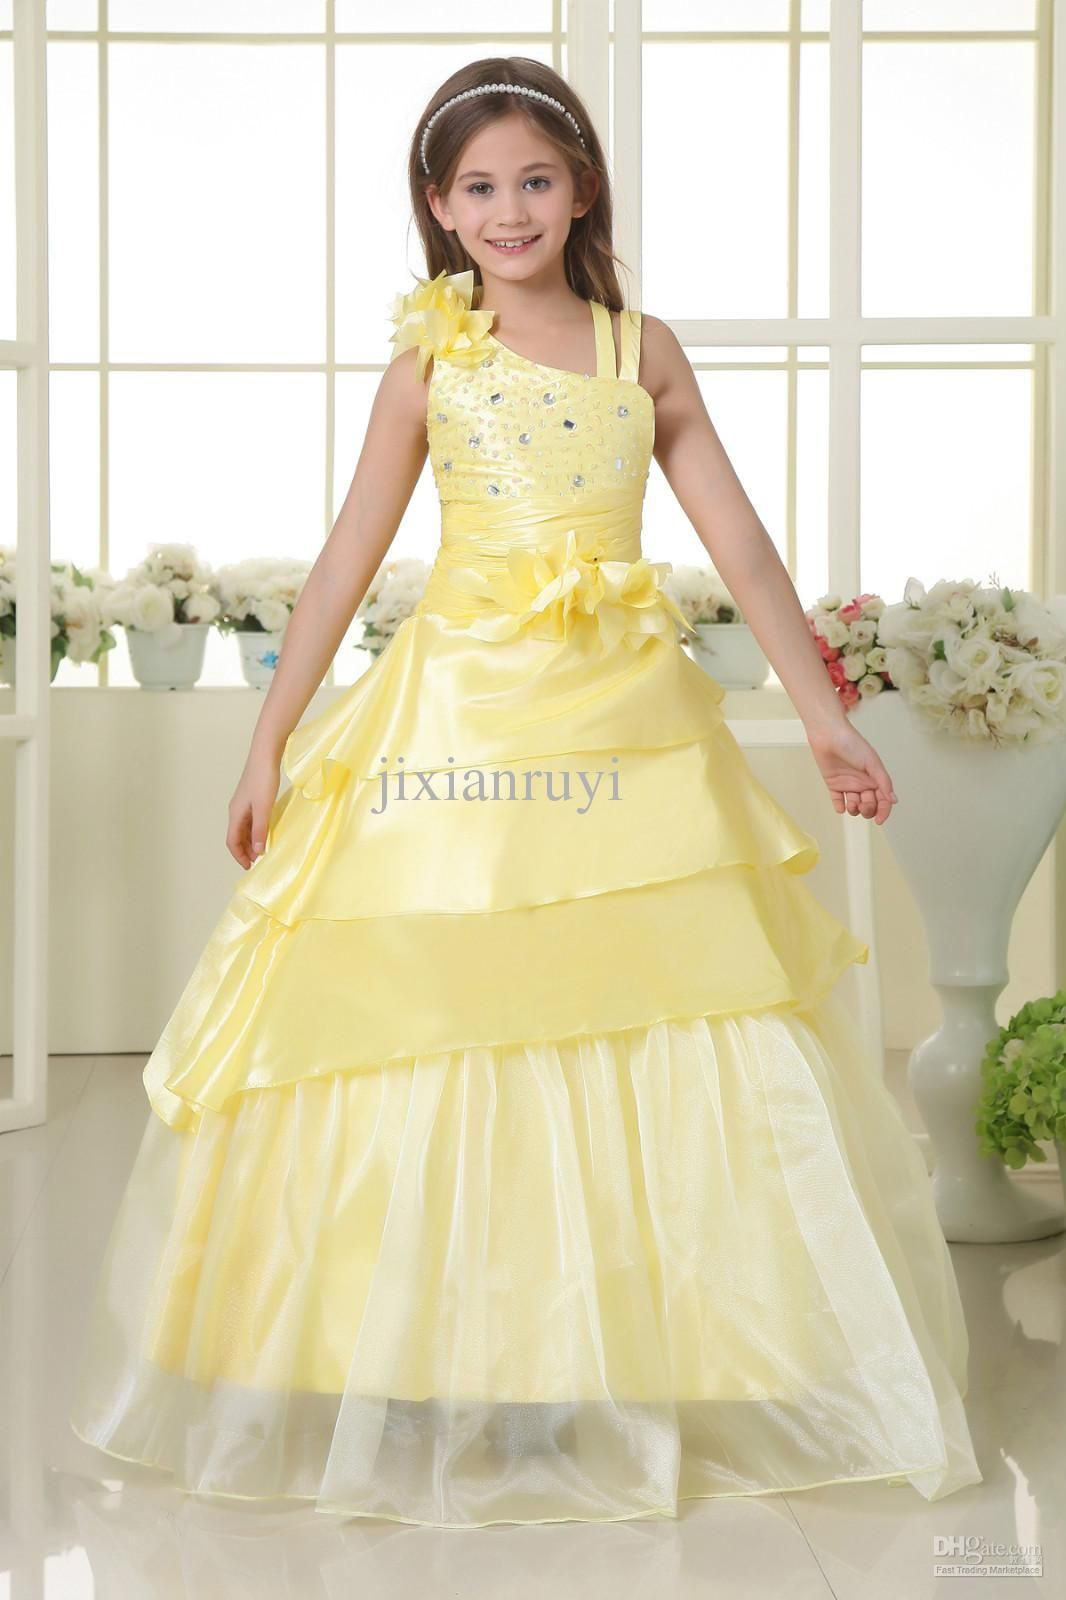 Yellow flower girl dresses cheapbeautifull pictures of flowers yellow flower girl dresses cheapbeautifull pictures of flowers beautifull pictures of flowers mightylinksfo Image collections